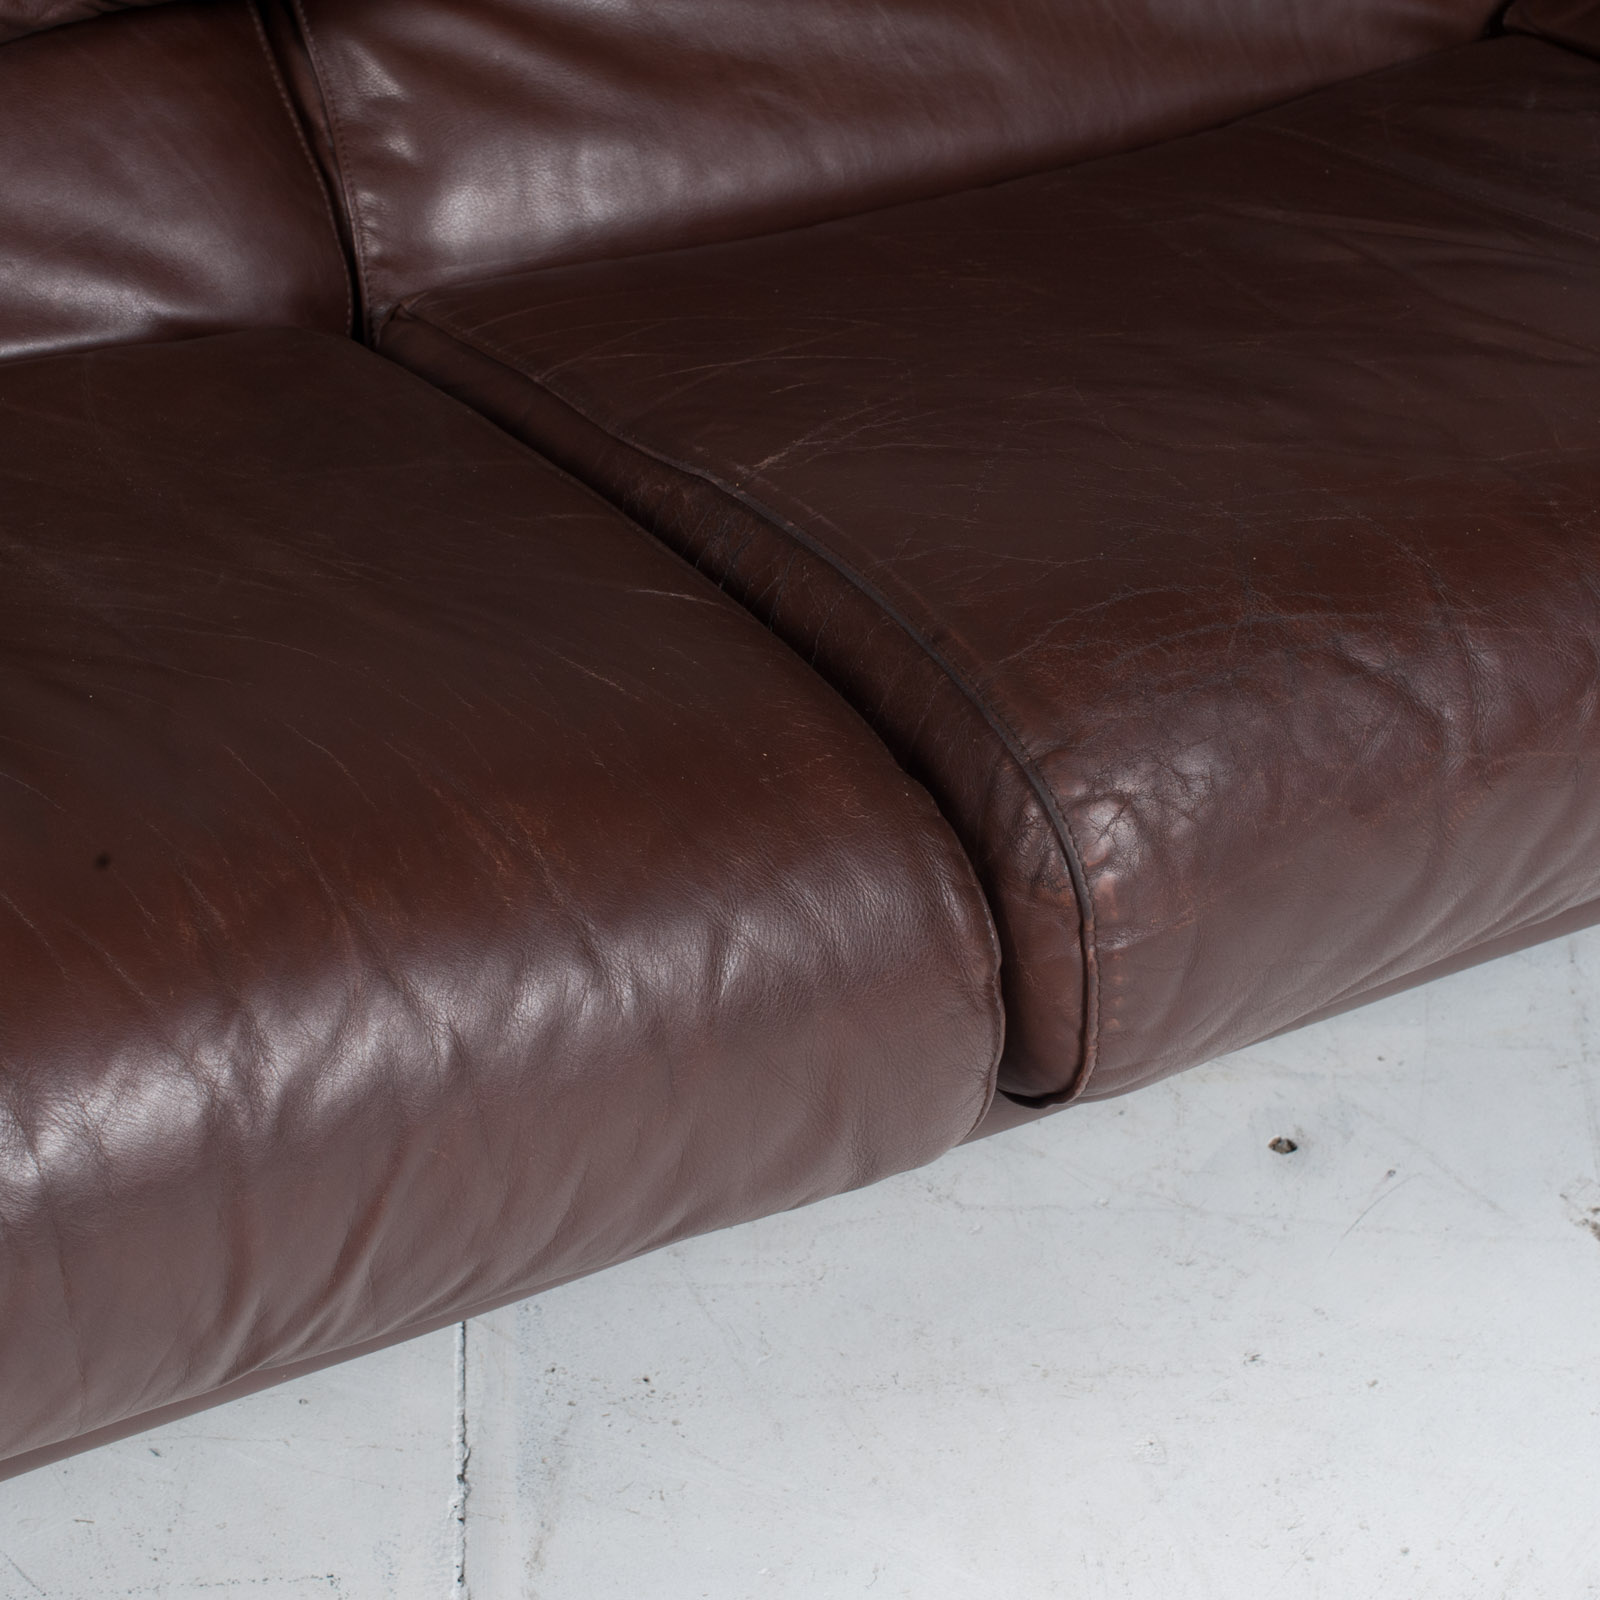 Alanda Sofa By Paolo Piva For B&b Italia In Burgundy Leather 1980s Italy 11